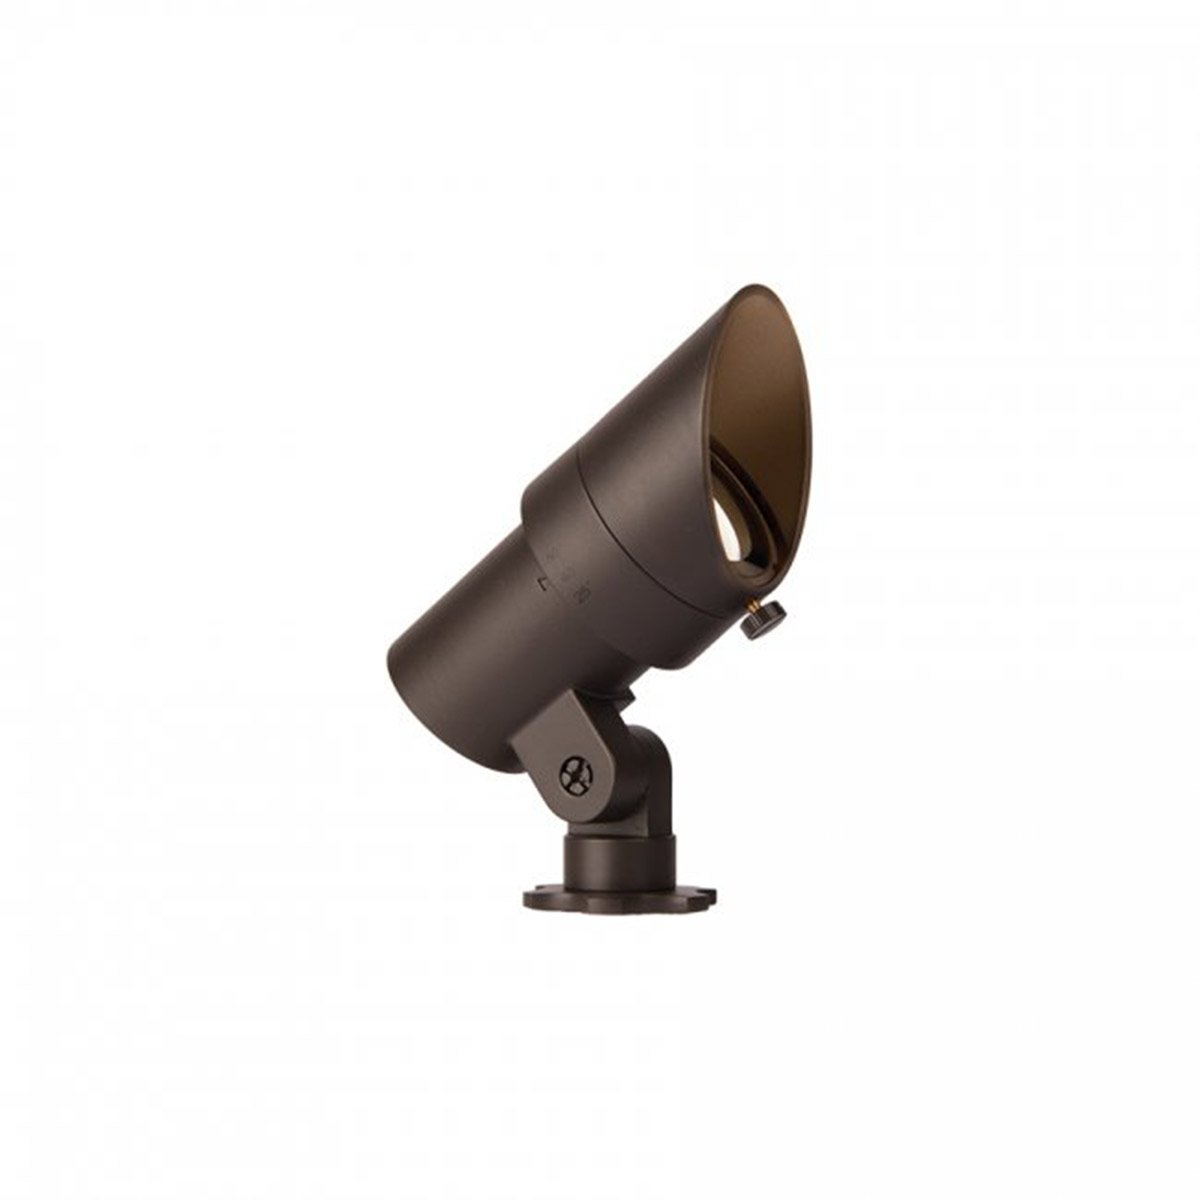 WAC Lighting Wac Landscape 5111-30BZ LED 12V Mini Accent Finish 3000K, Bronze by WAC Lighting